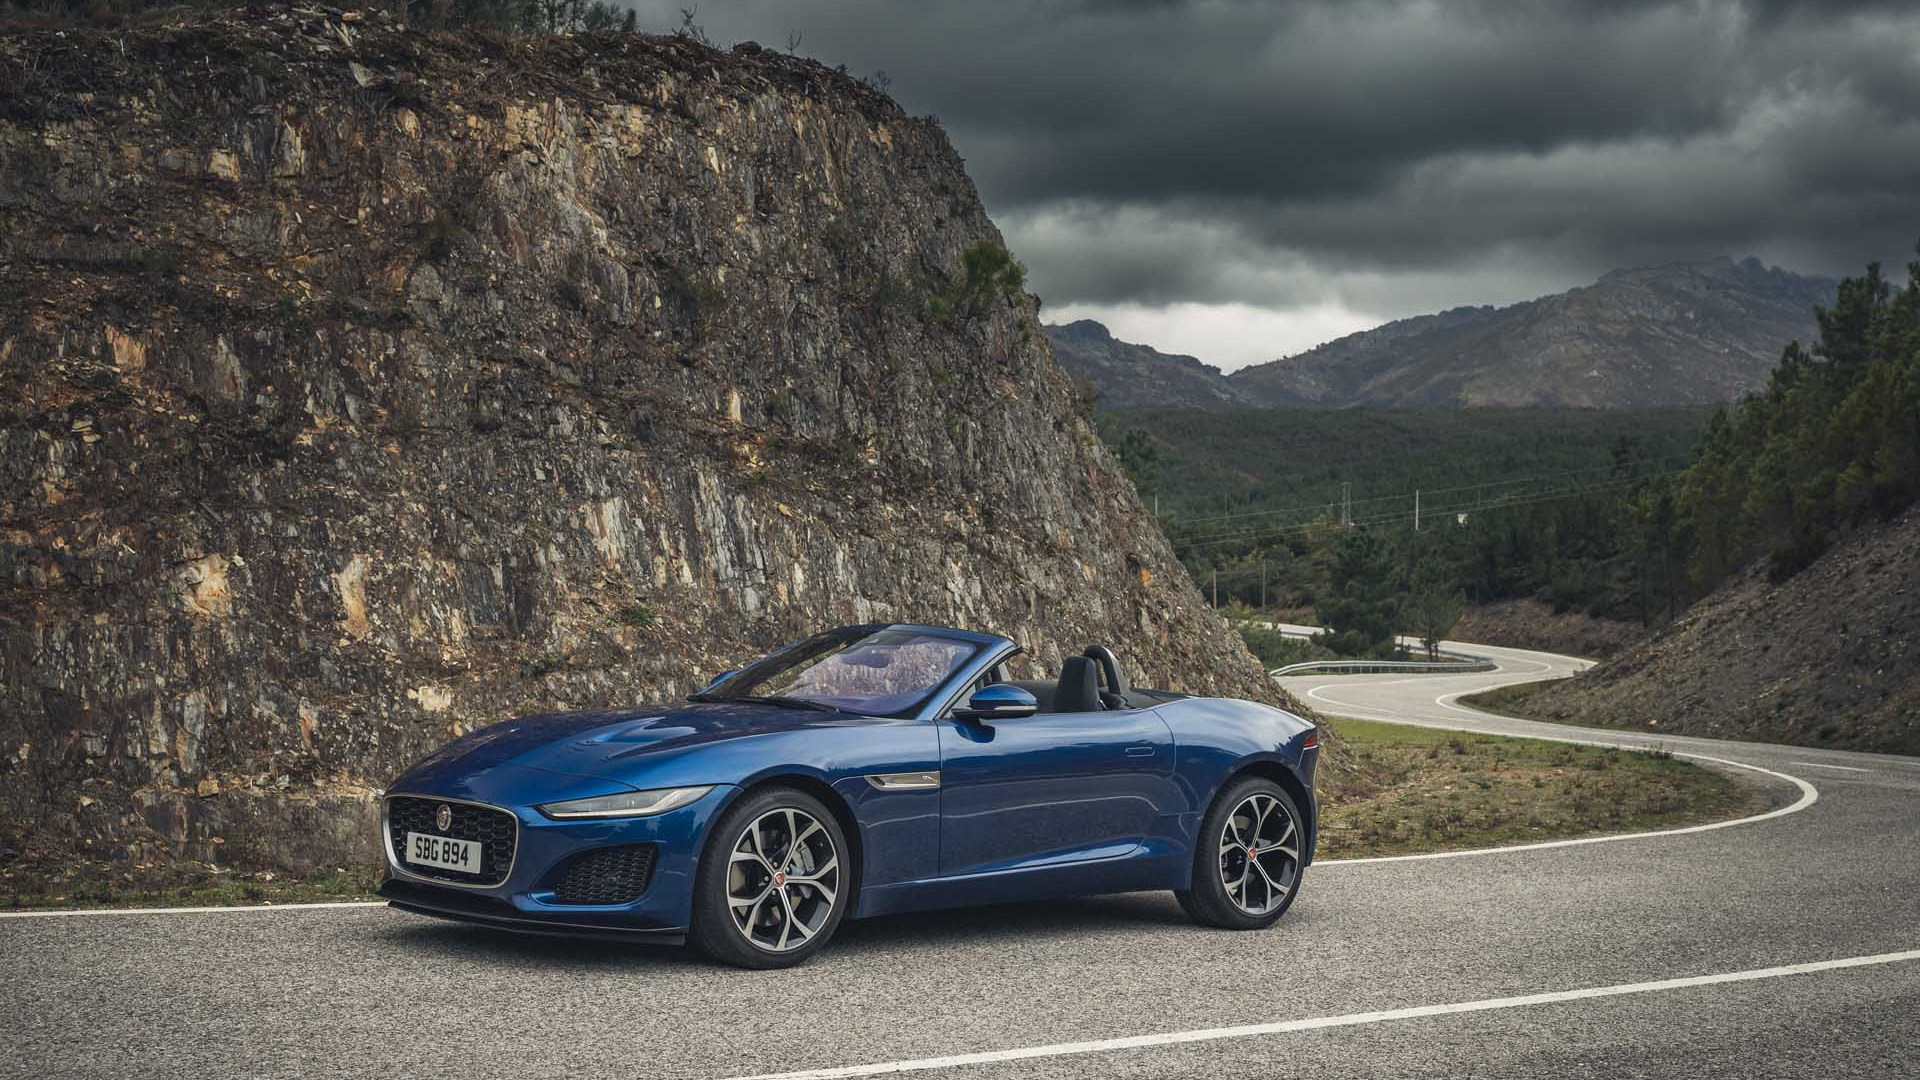 2021 Jaguar F-Type P300 first drive